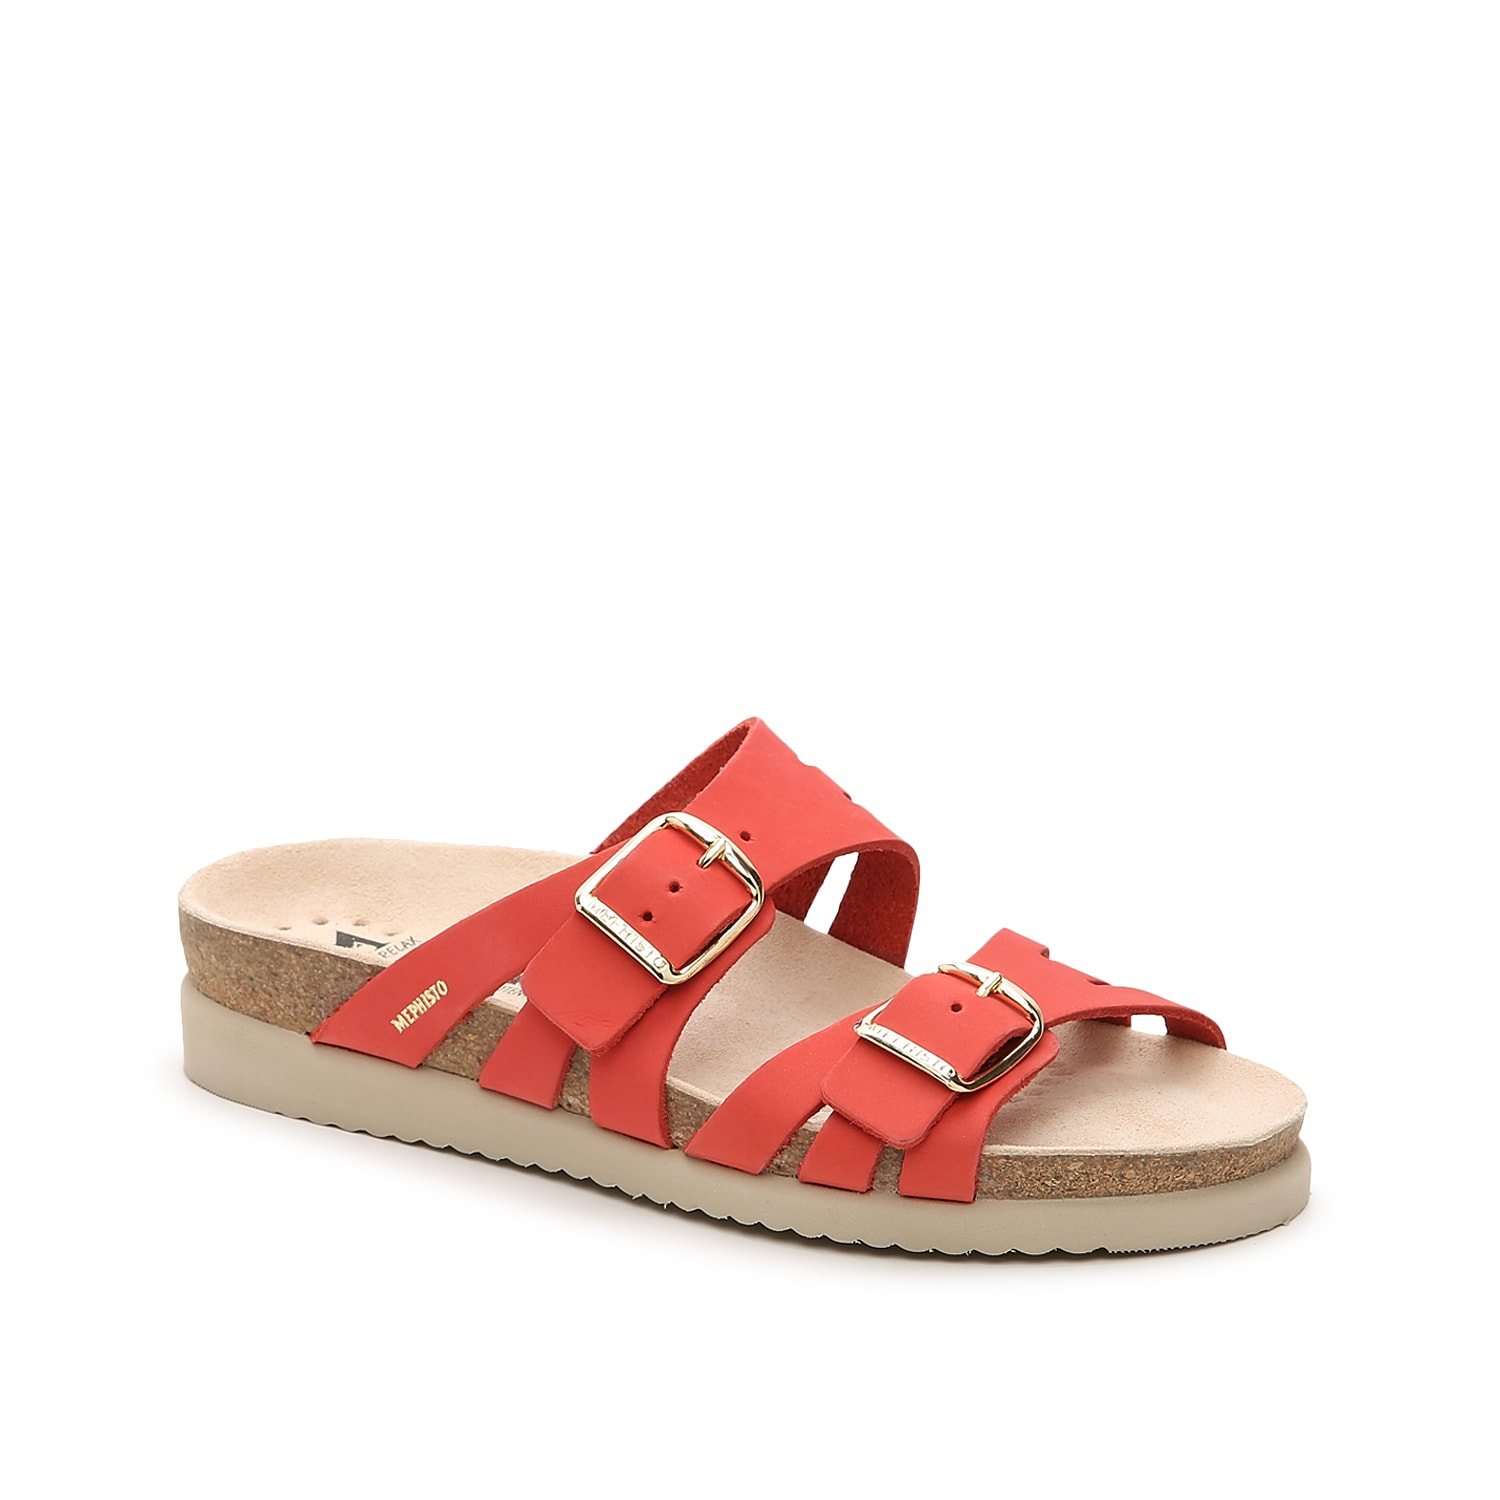 Mephisto brings you the Helisa sandal for all of your casual looks. This silhouette is fashioned with leather straps and a contoured footbed for daylong wear.